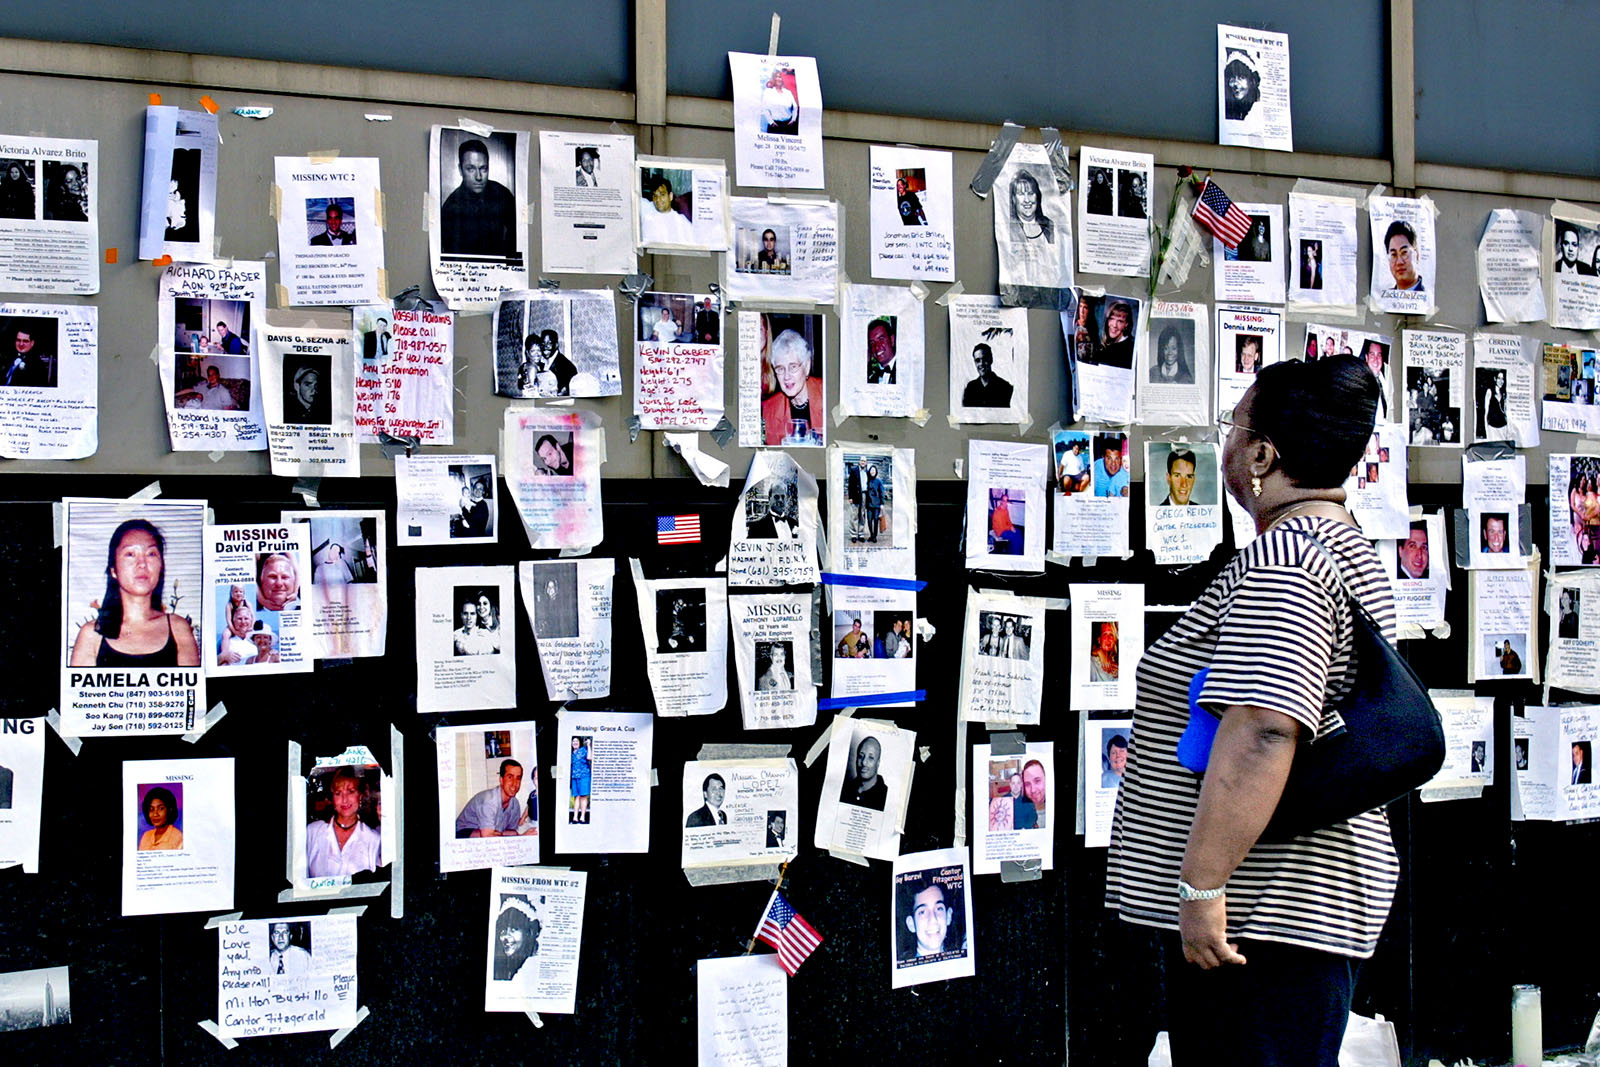 These notes of missing people could be seen all over Manhattan after 9/11.